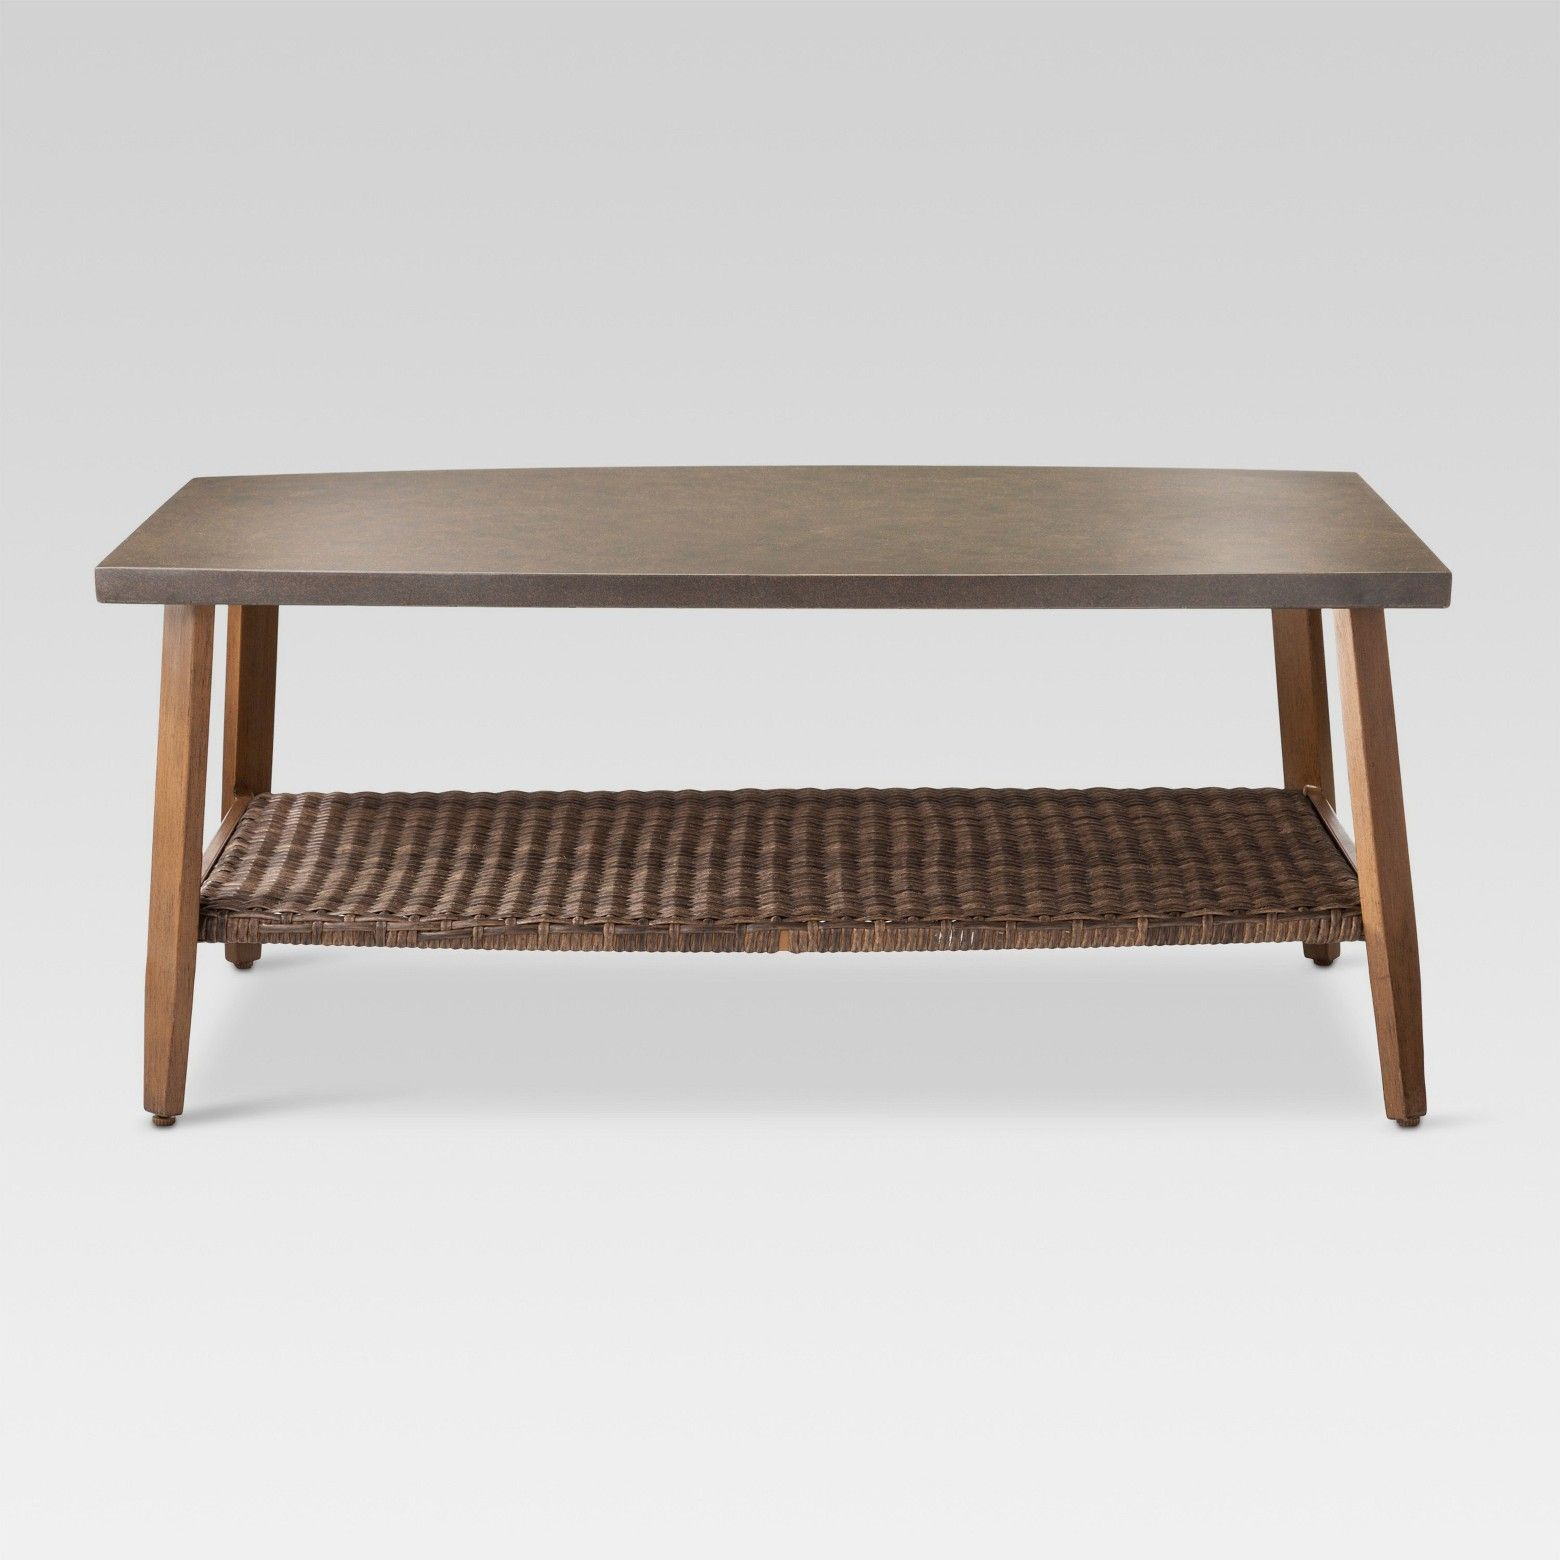 Complete Your Patio Deck Or Favorite Outdoor Space With The Mayhew Wicker Patio Coffee Table From Thres Resin Patio Furniture Coffee Table Wicker Coffee Table